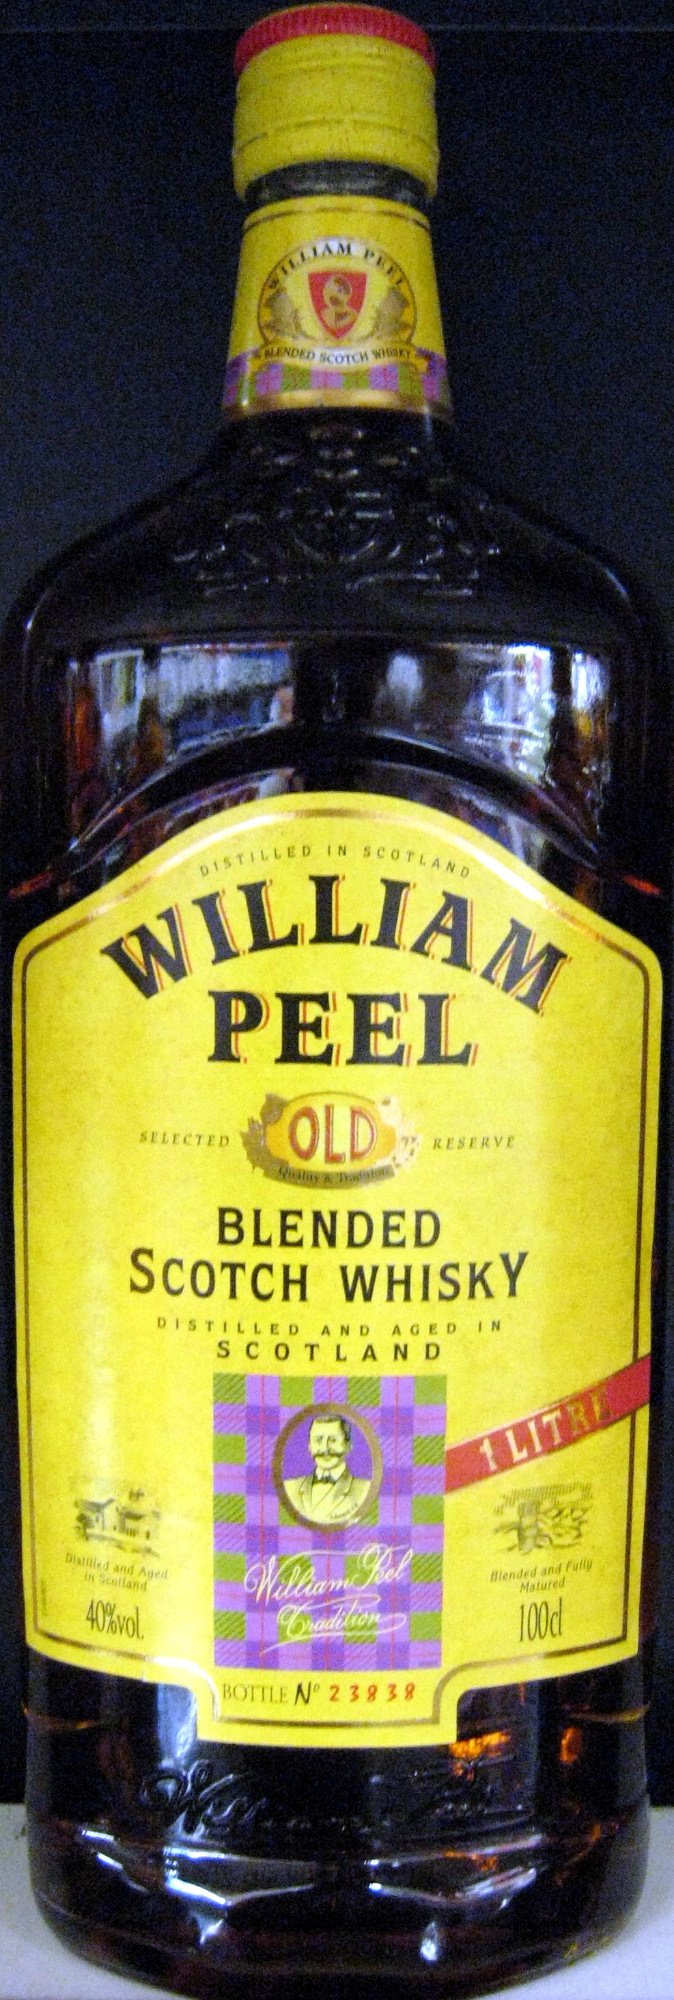 Old Blended Scotch Whisky - Product